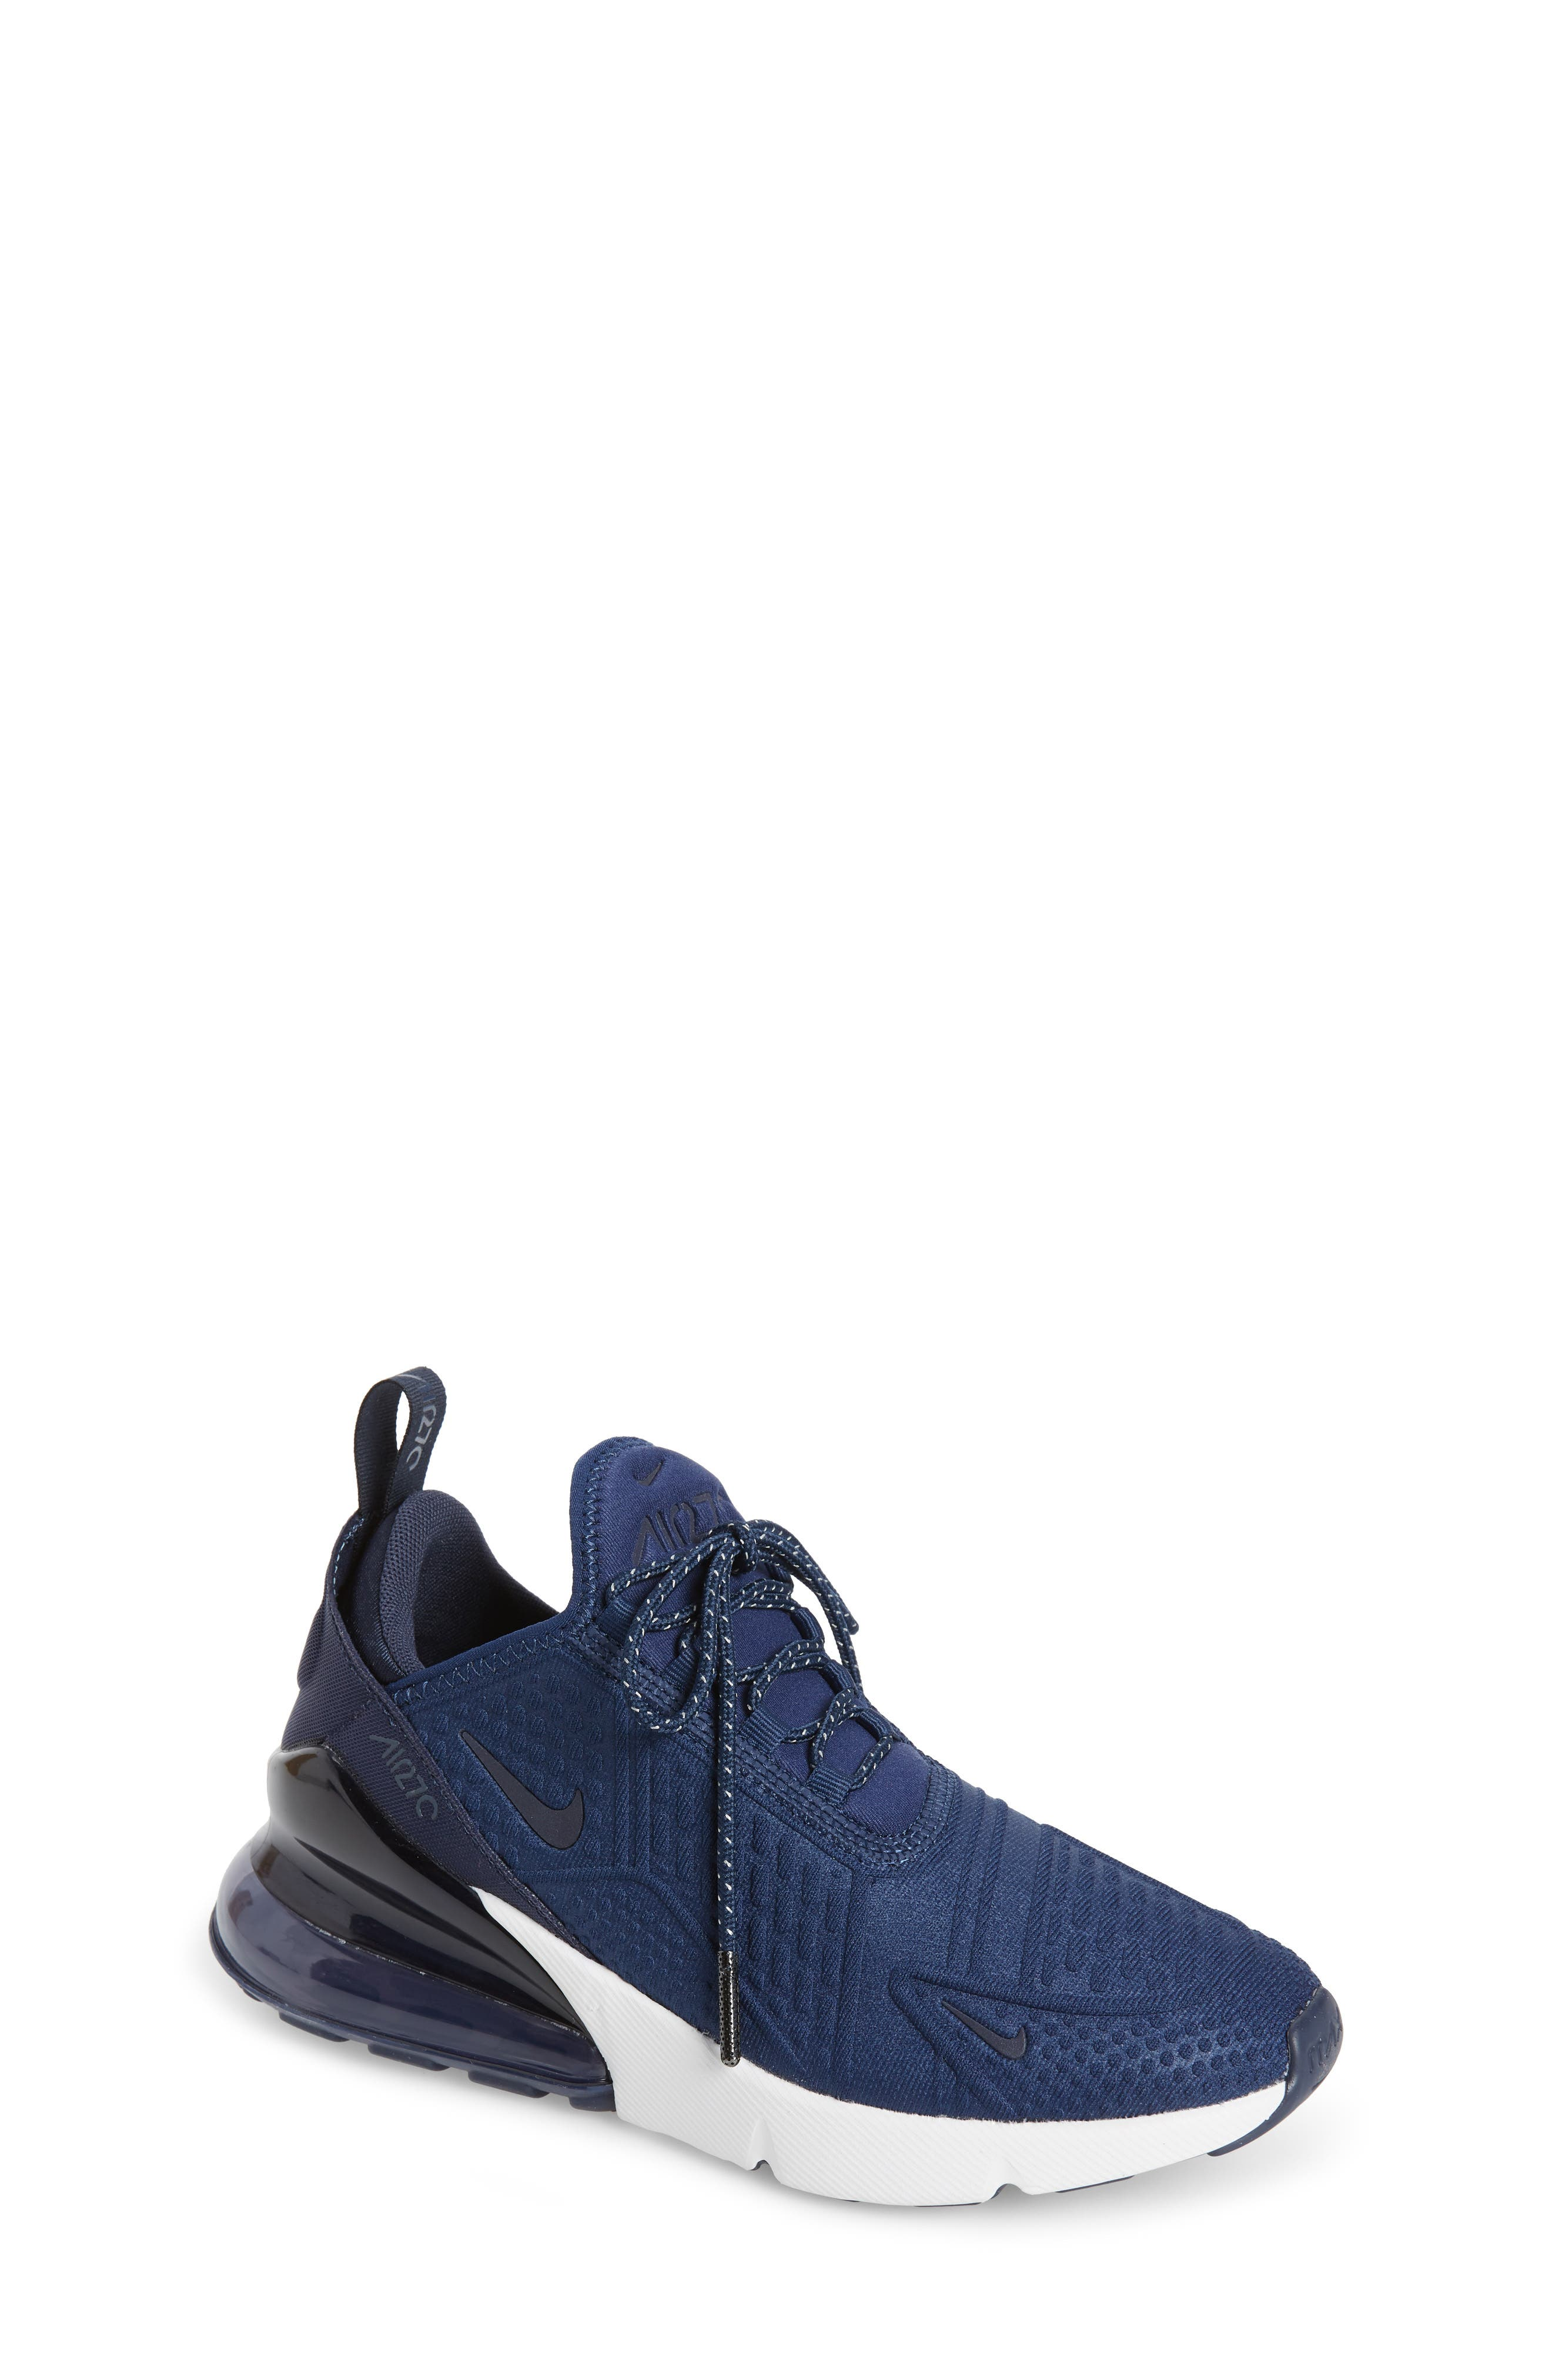 Kids Nike Air Max 270 Sneaker Size 65 M  Blue